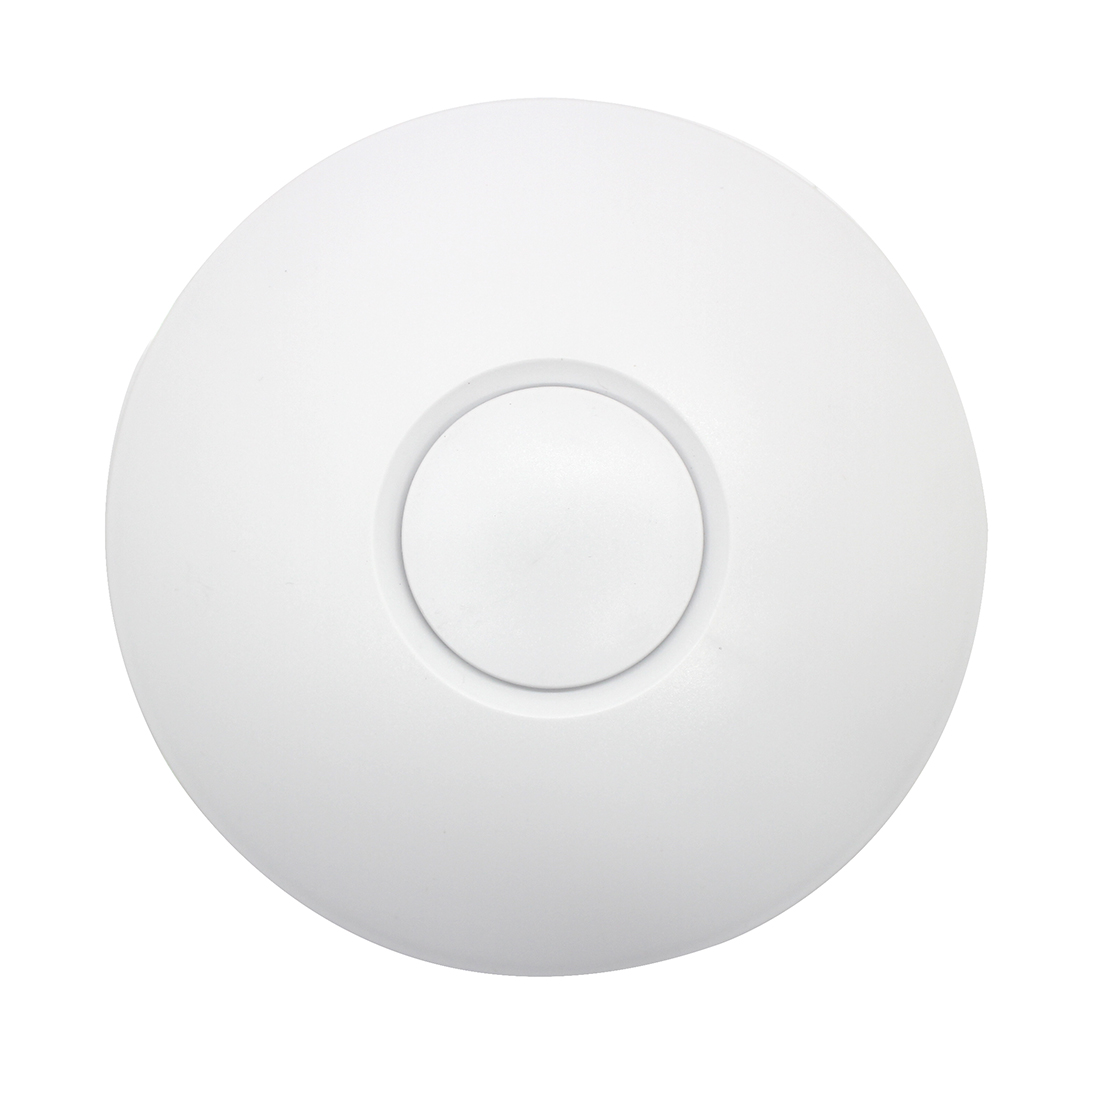 Hot Sale 300Mbps WIFI Router Wall Mount Ceiling AP Access Point High Power Booster Wireless Amplifier wlan(China (Mainland))